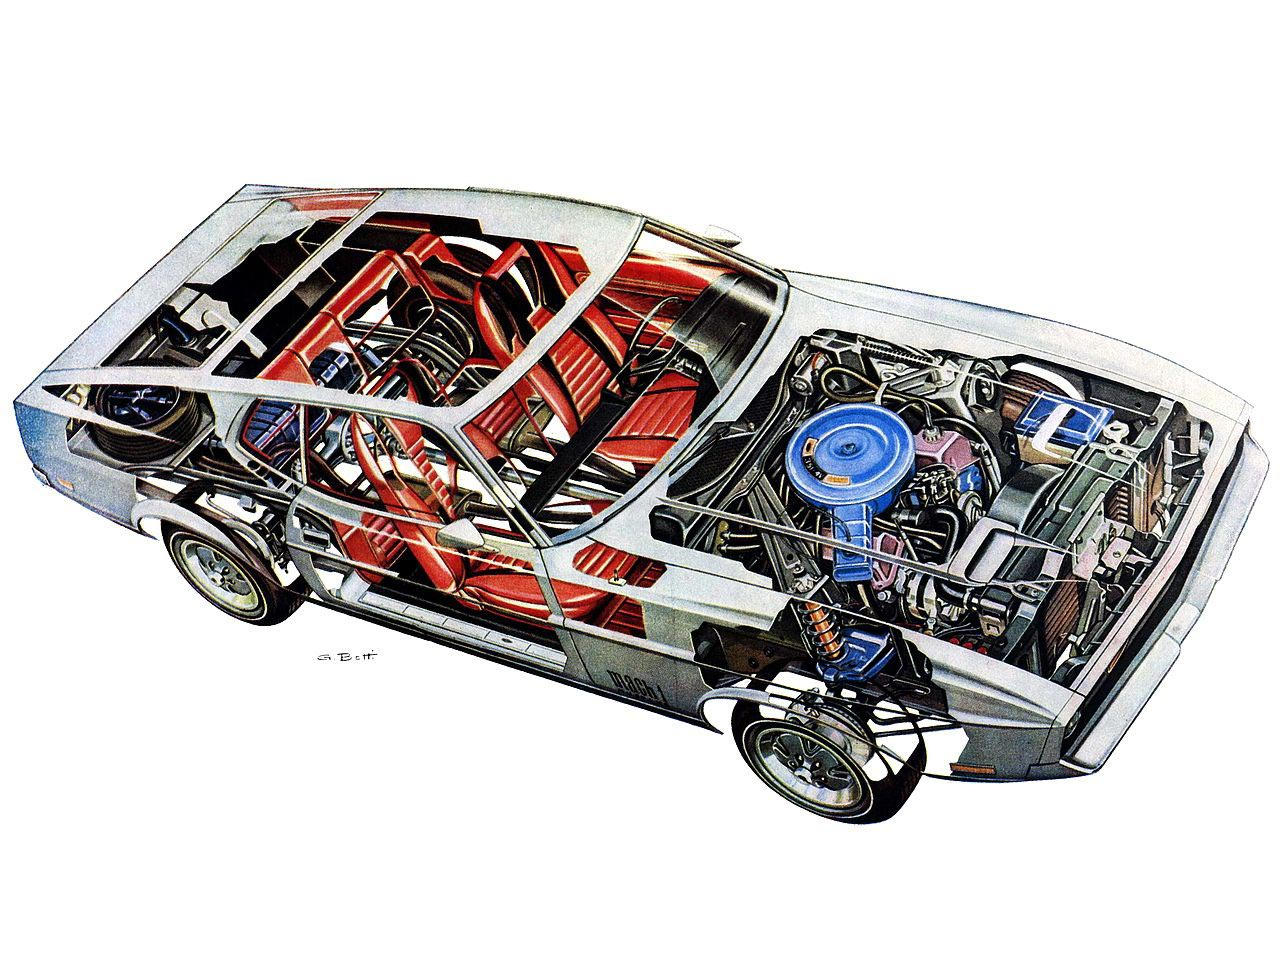 Ford Mustang Mach 1 cutaway drawing